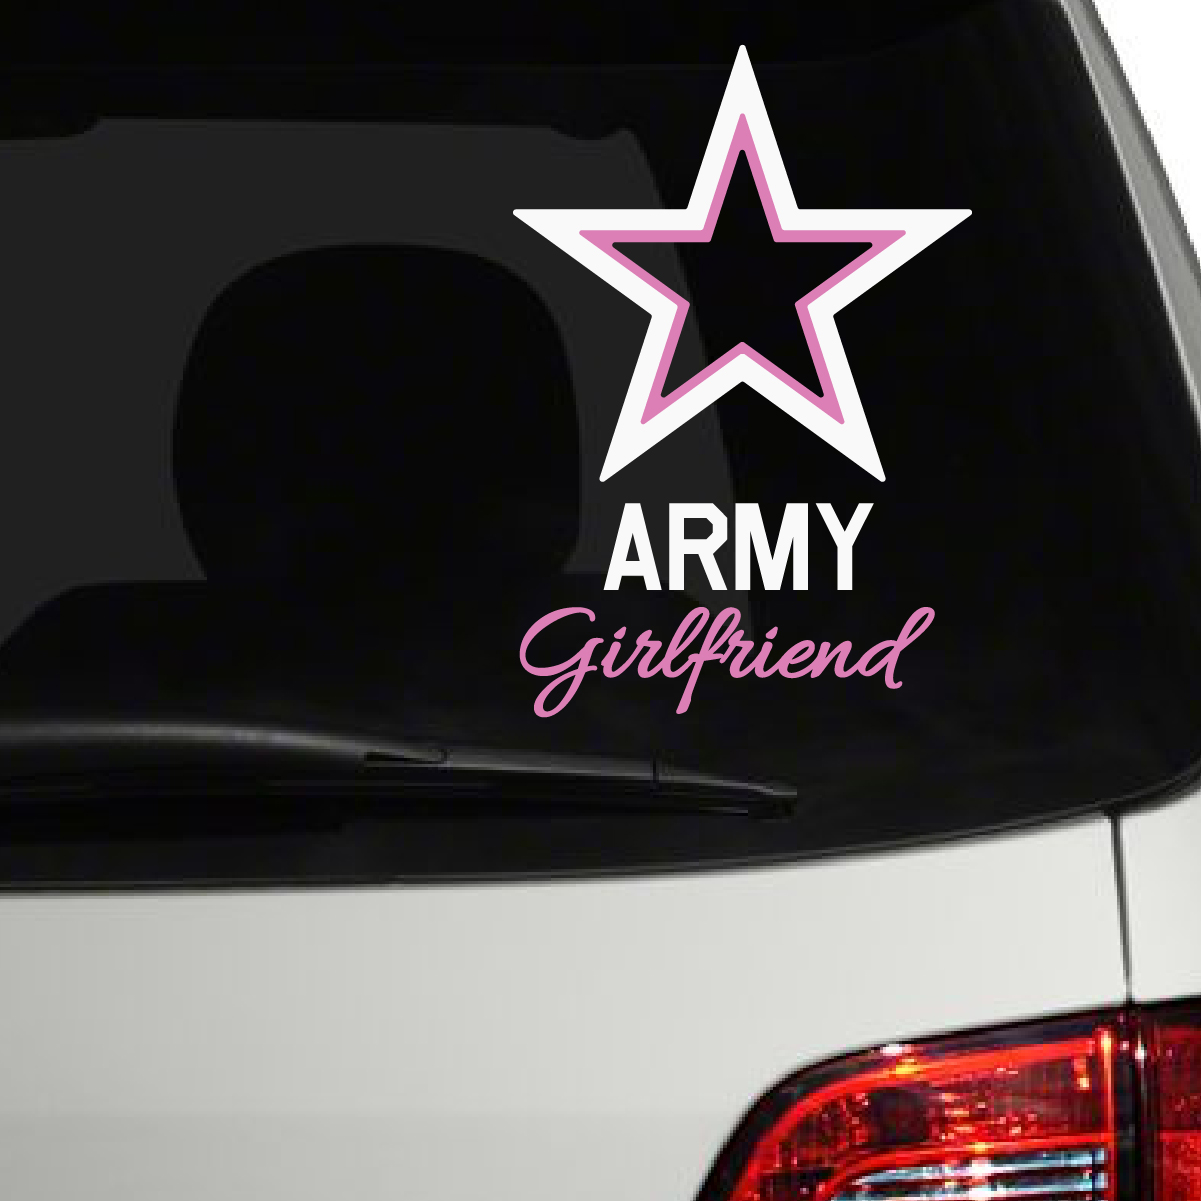 Army Girlfriend Car Decals The Decal Guru - Decals for your car